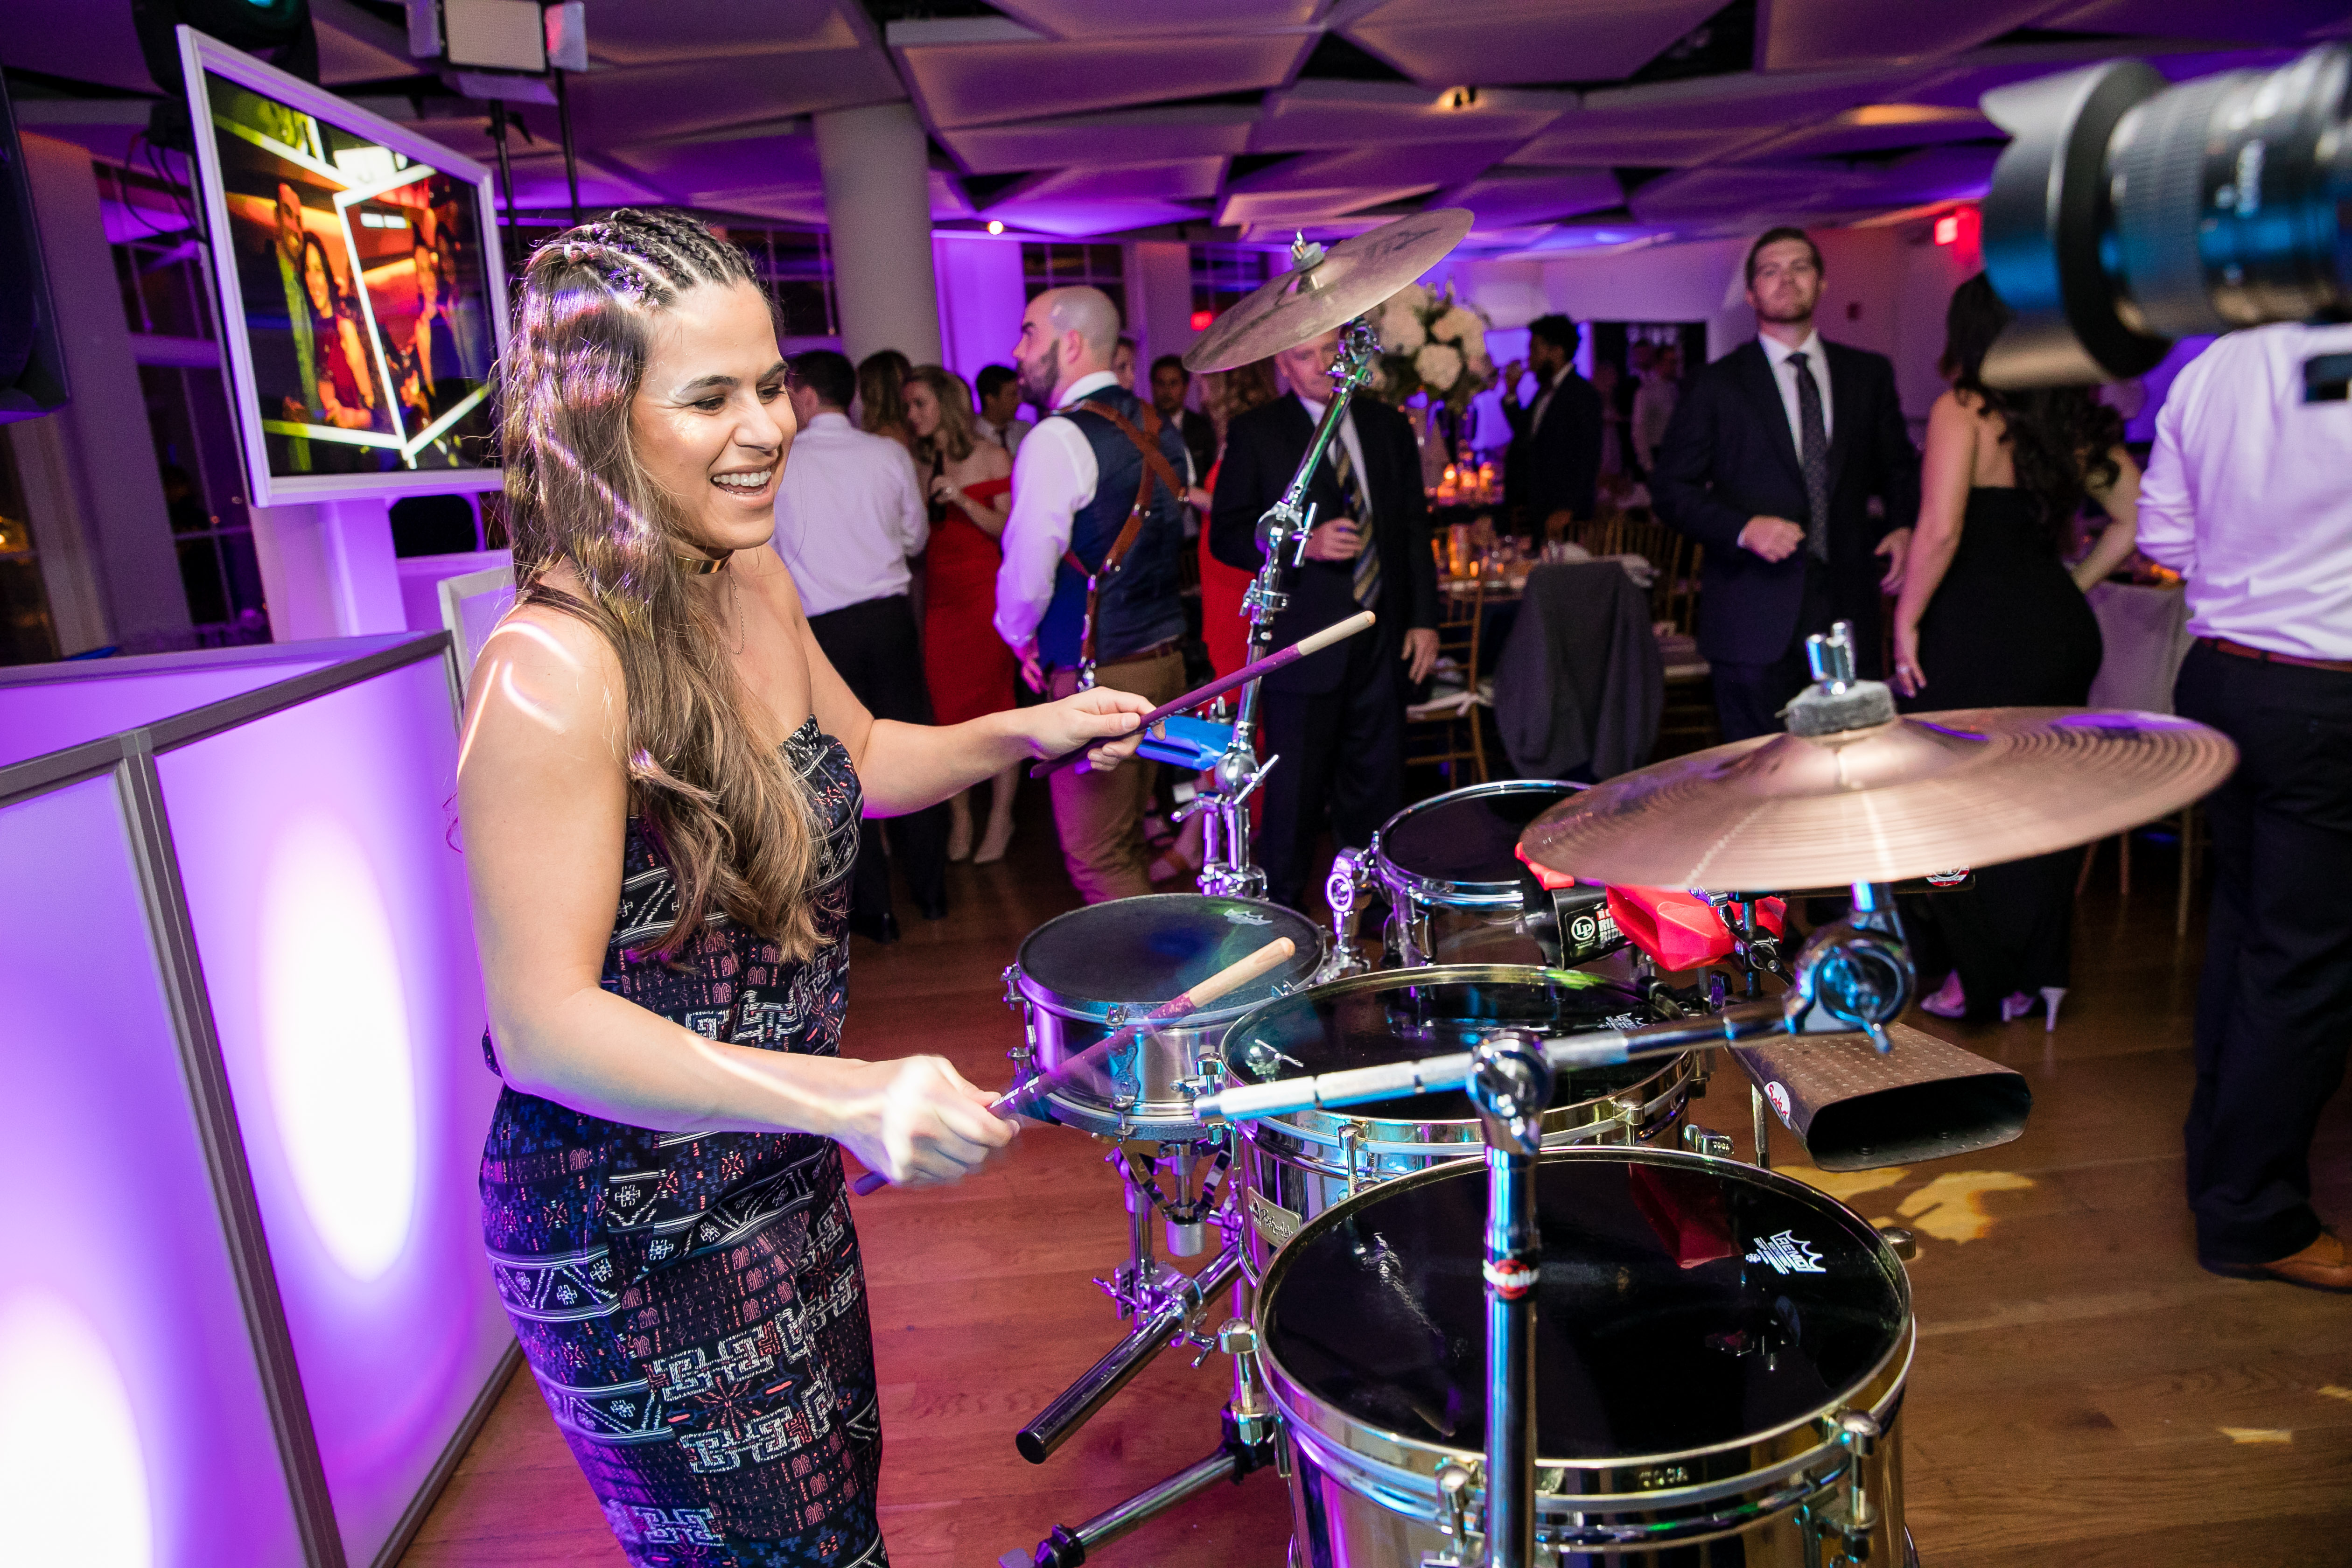 drummer at wedding reception